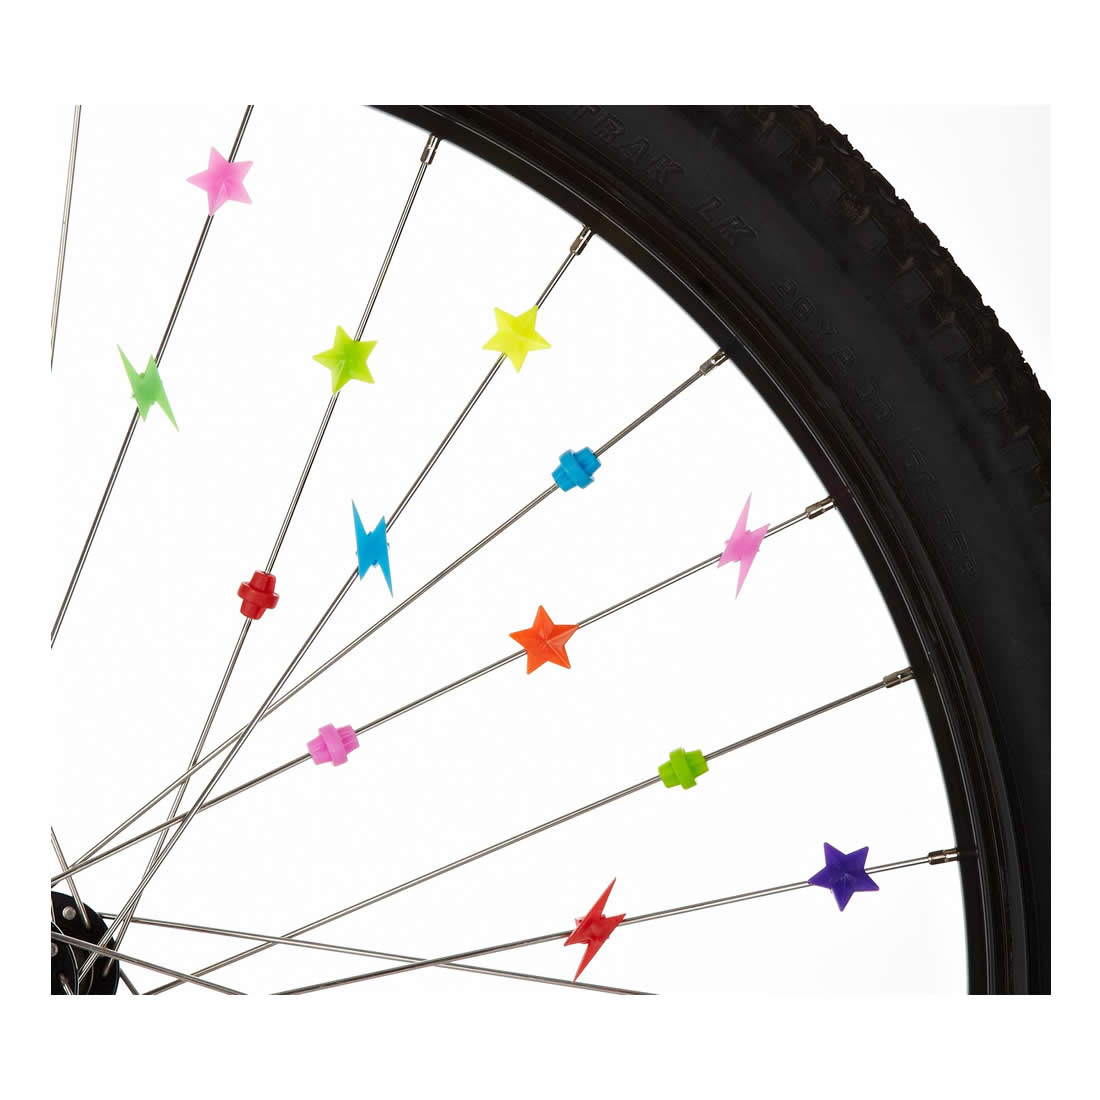 Run Sun Bike Accessories Co Ltd Bicycle Parts Bike Plastic Parts